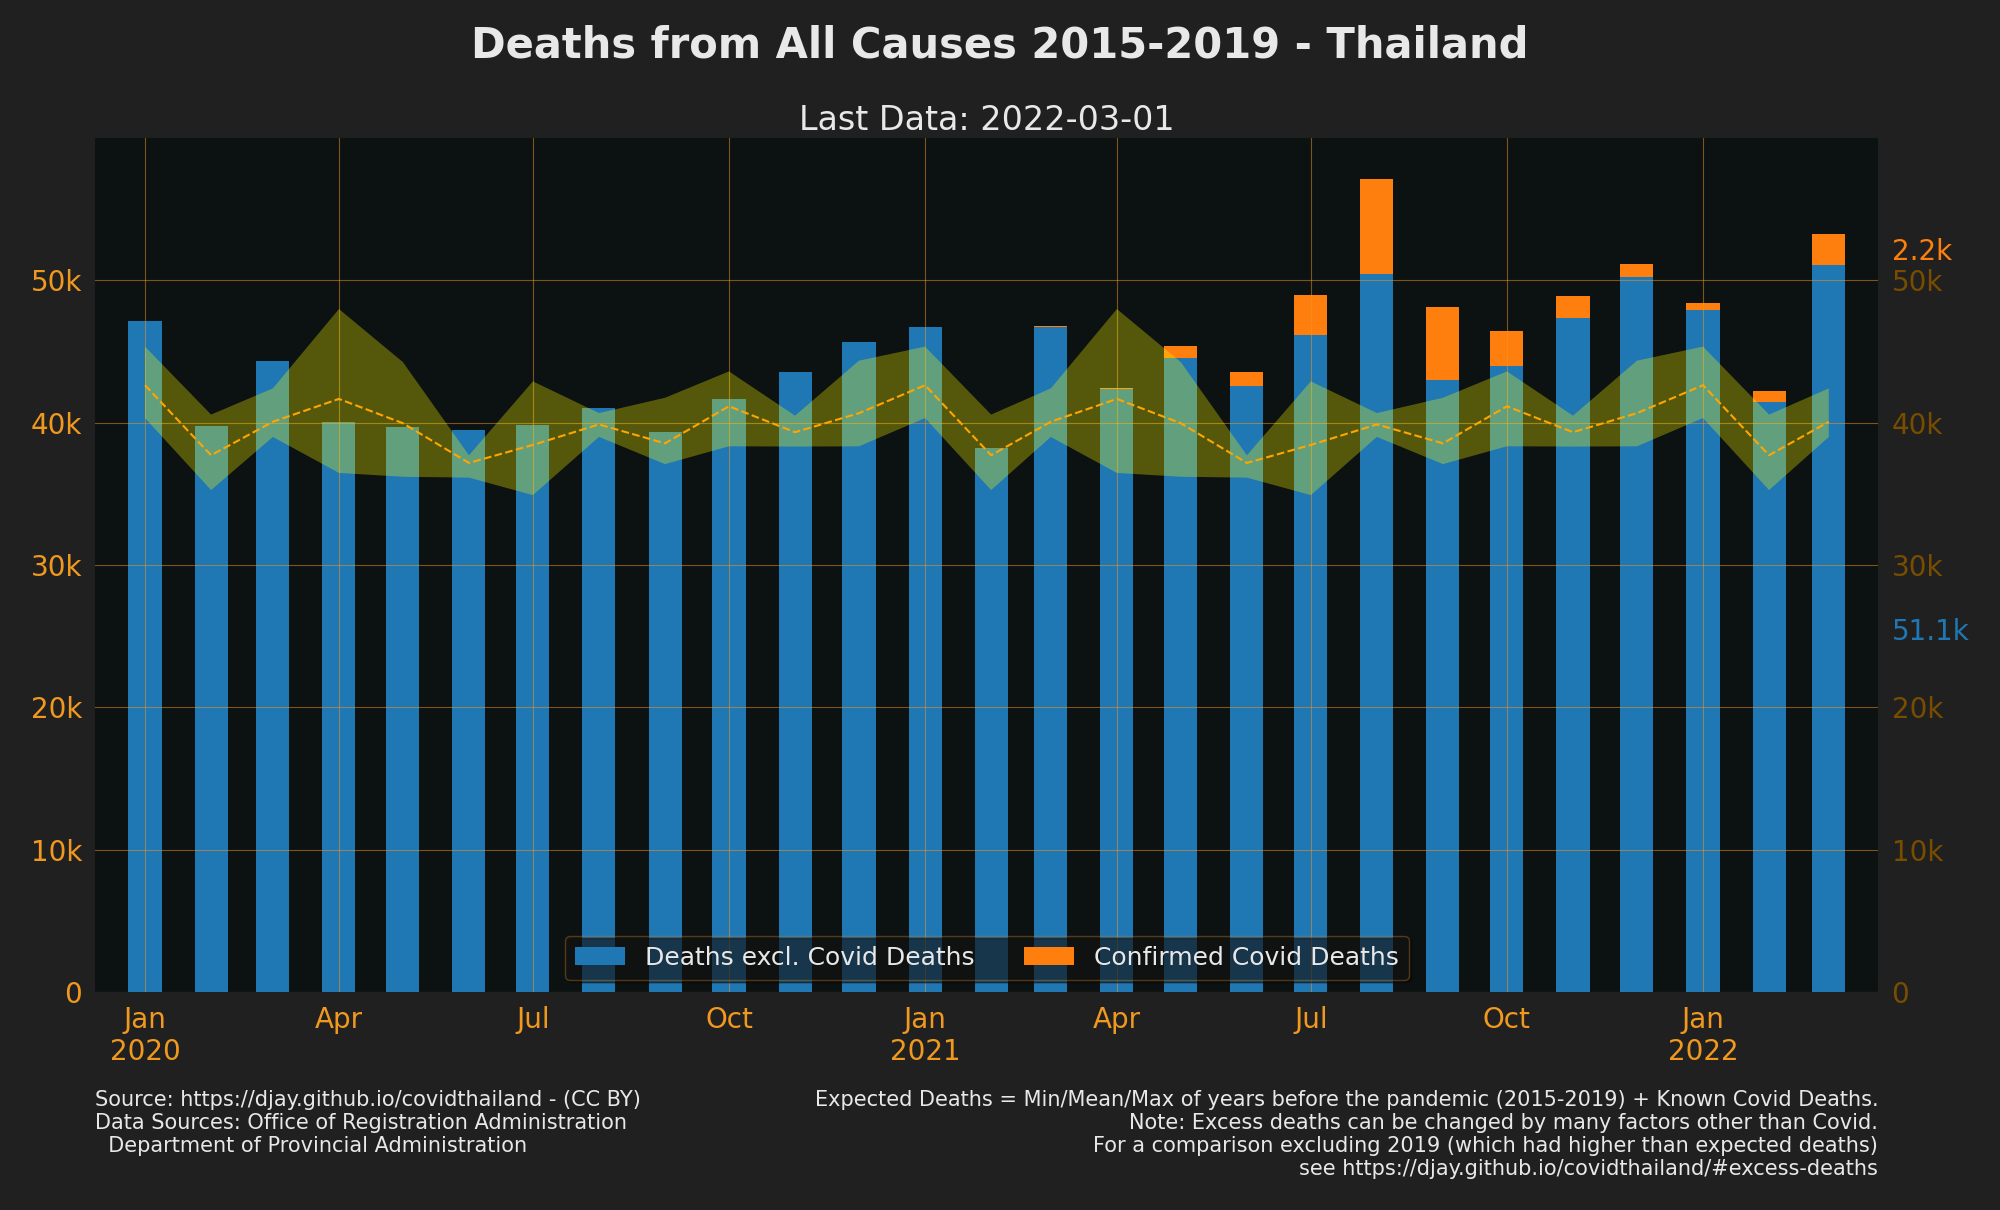 Thailand Excess deaths with Covid Deaths